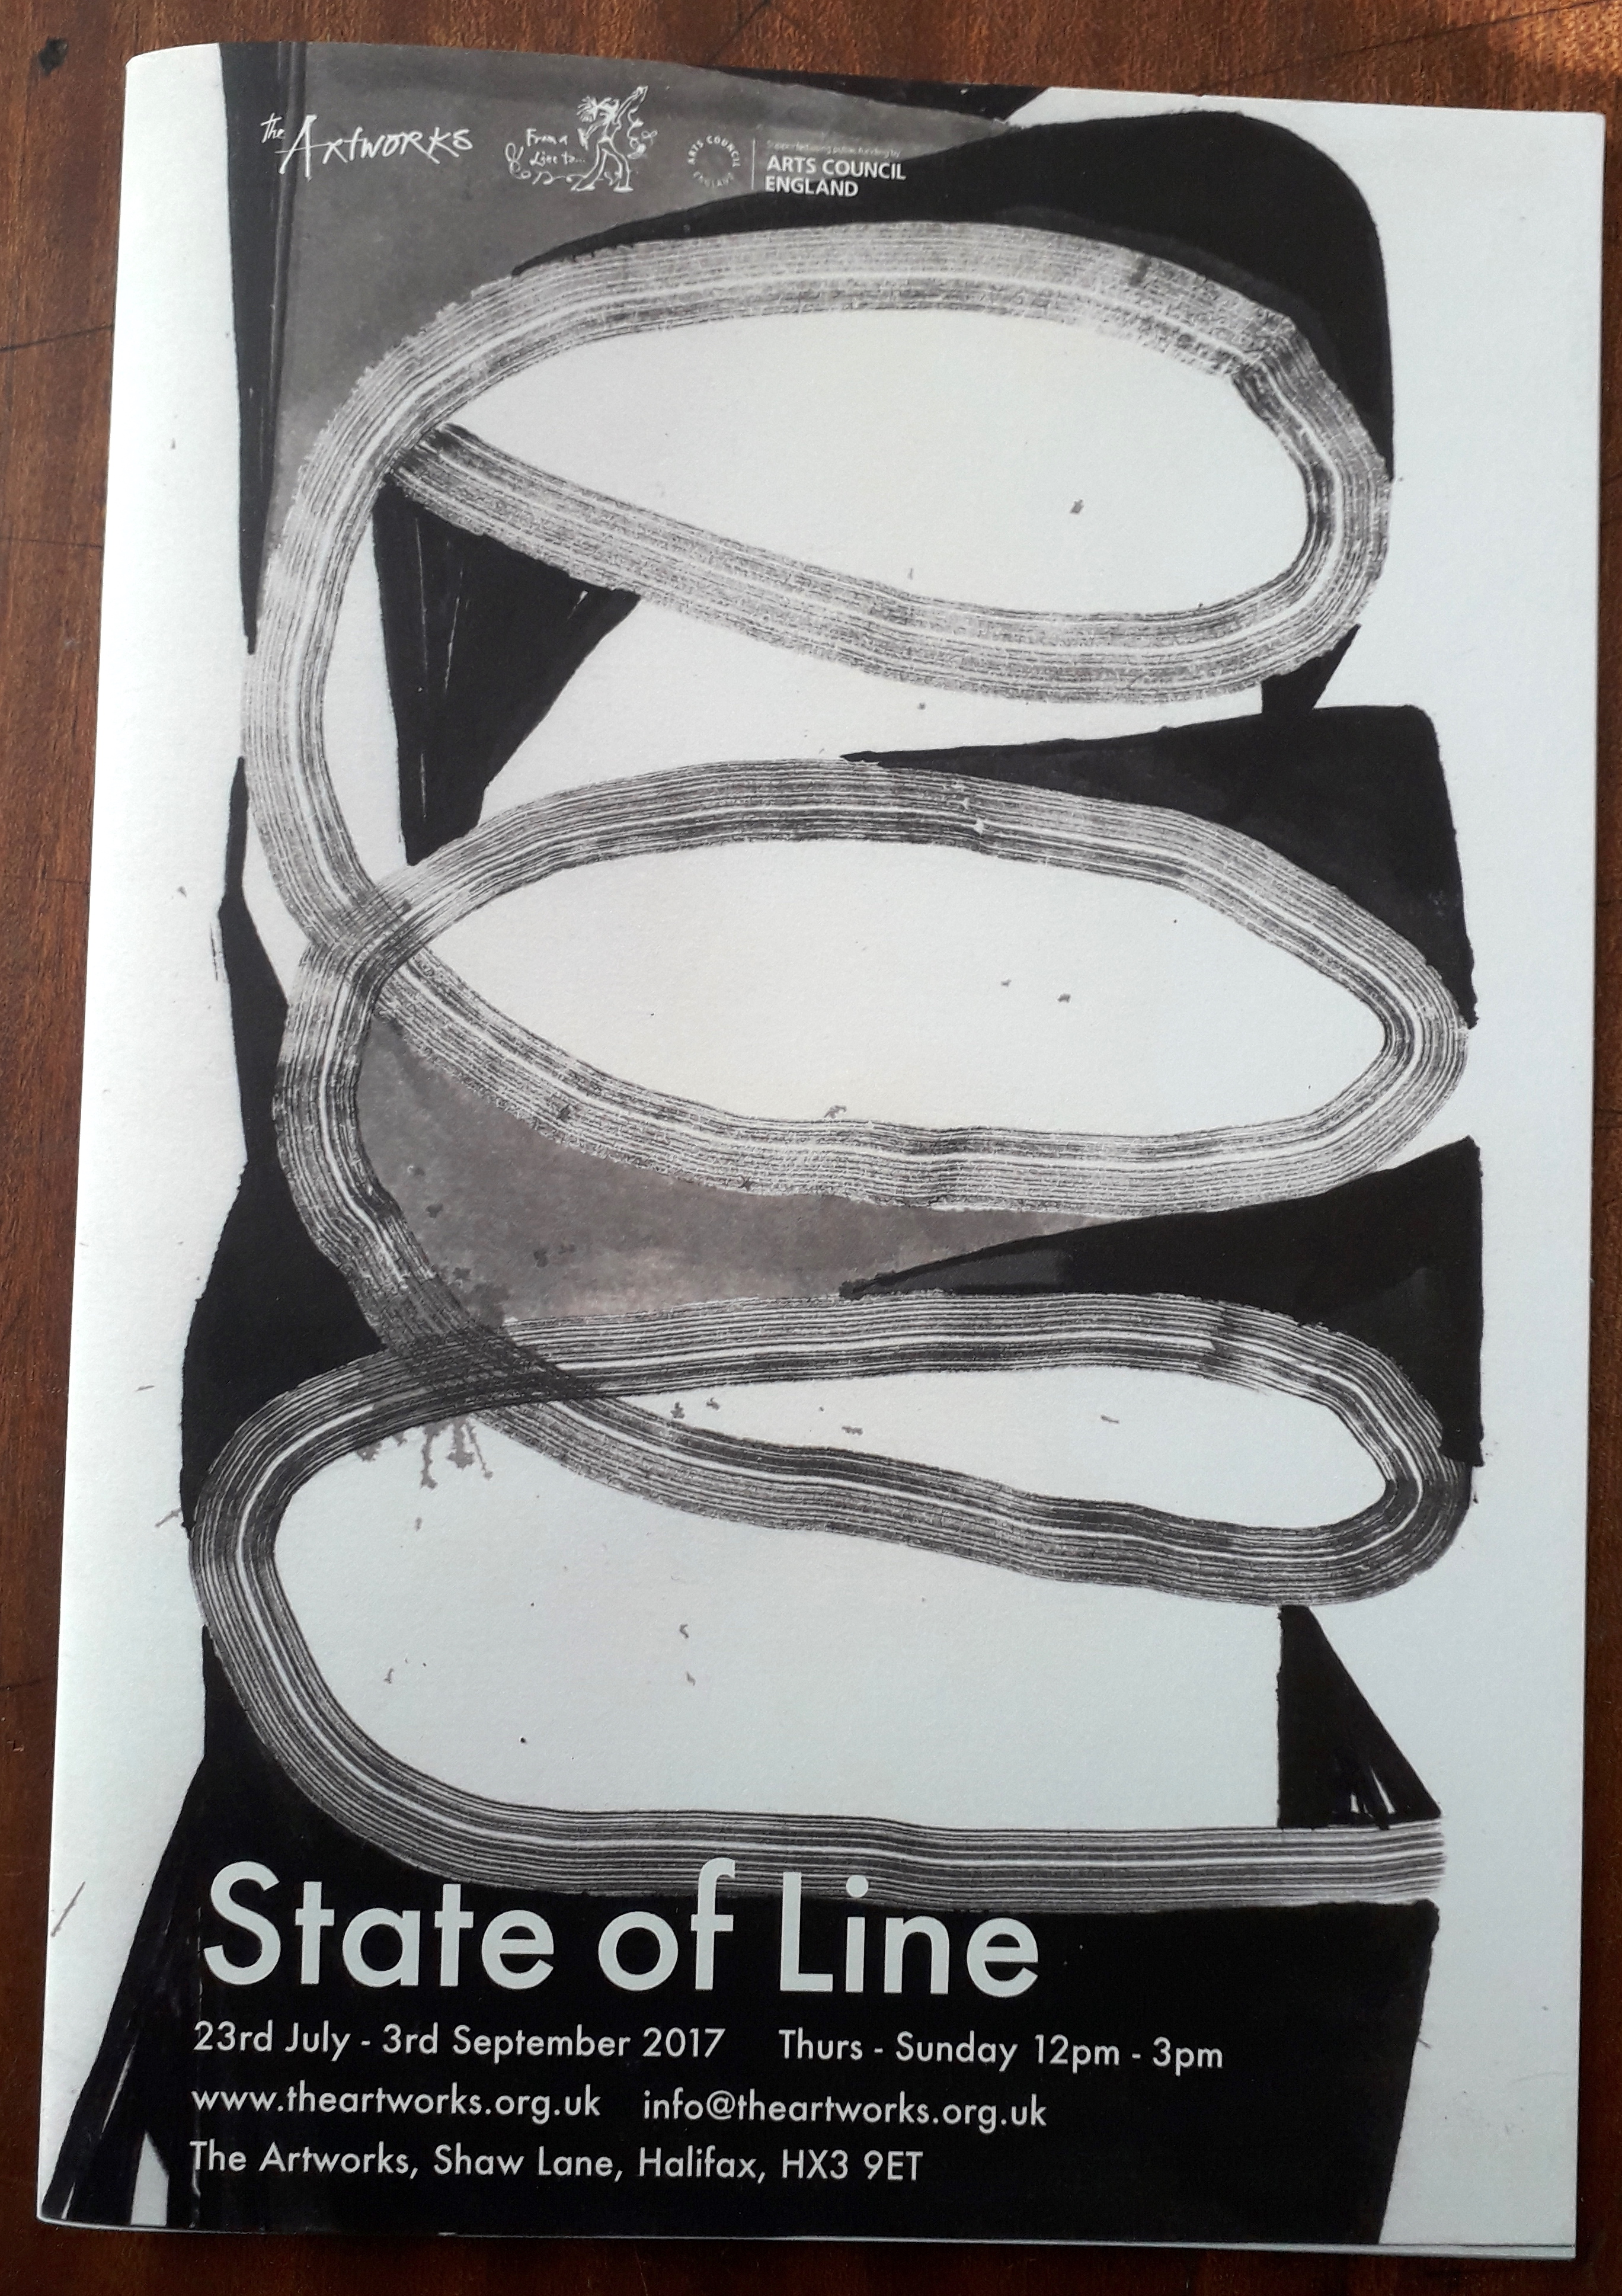 State of Line